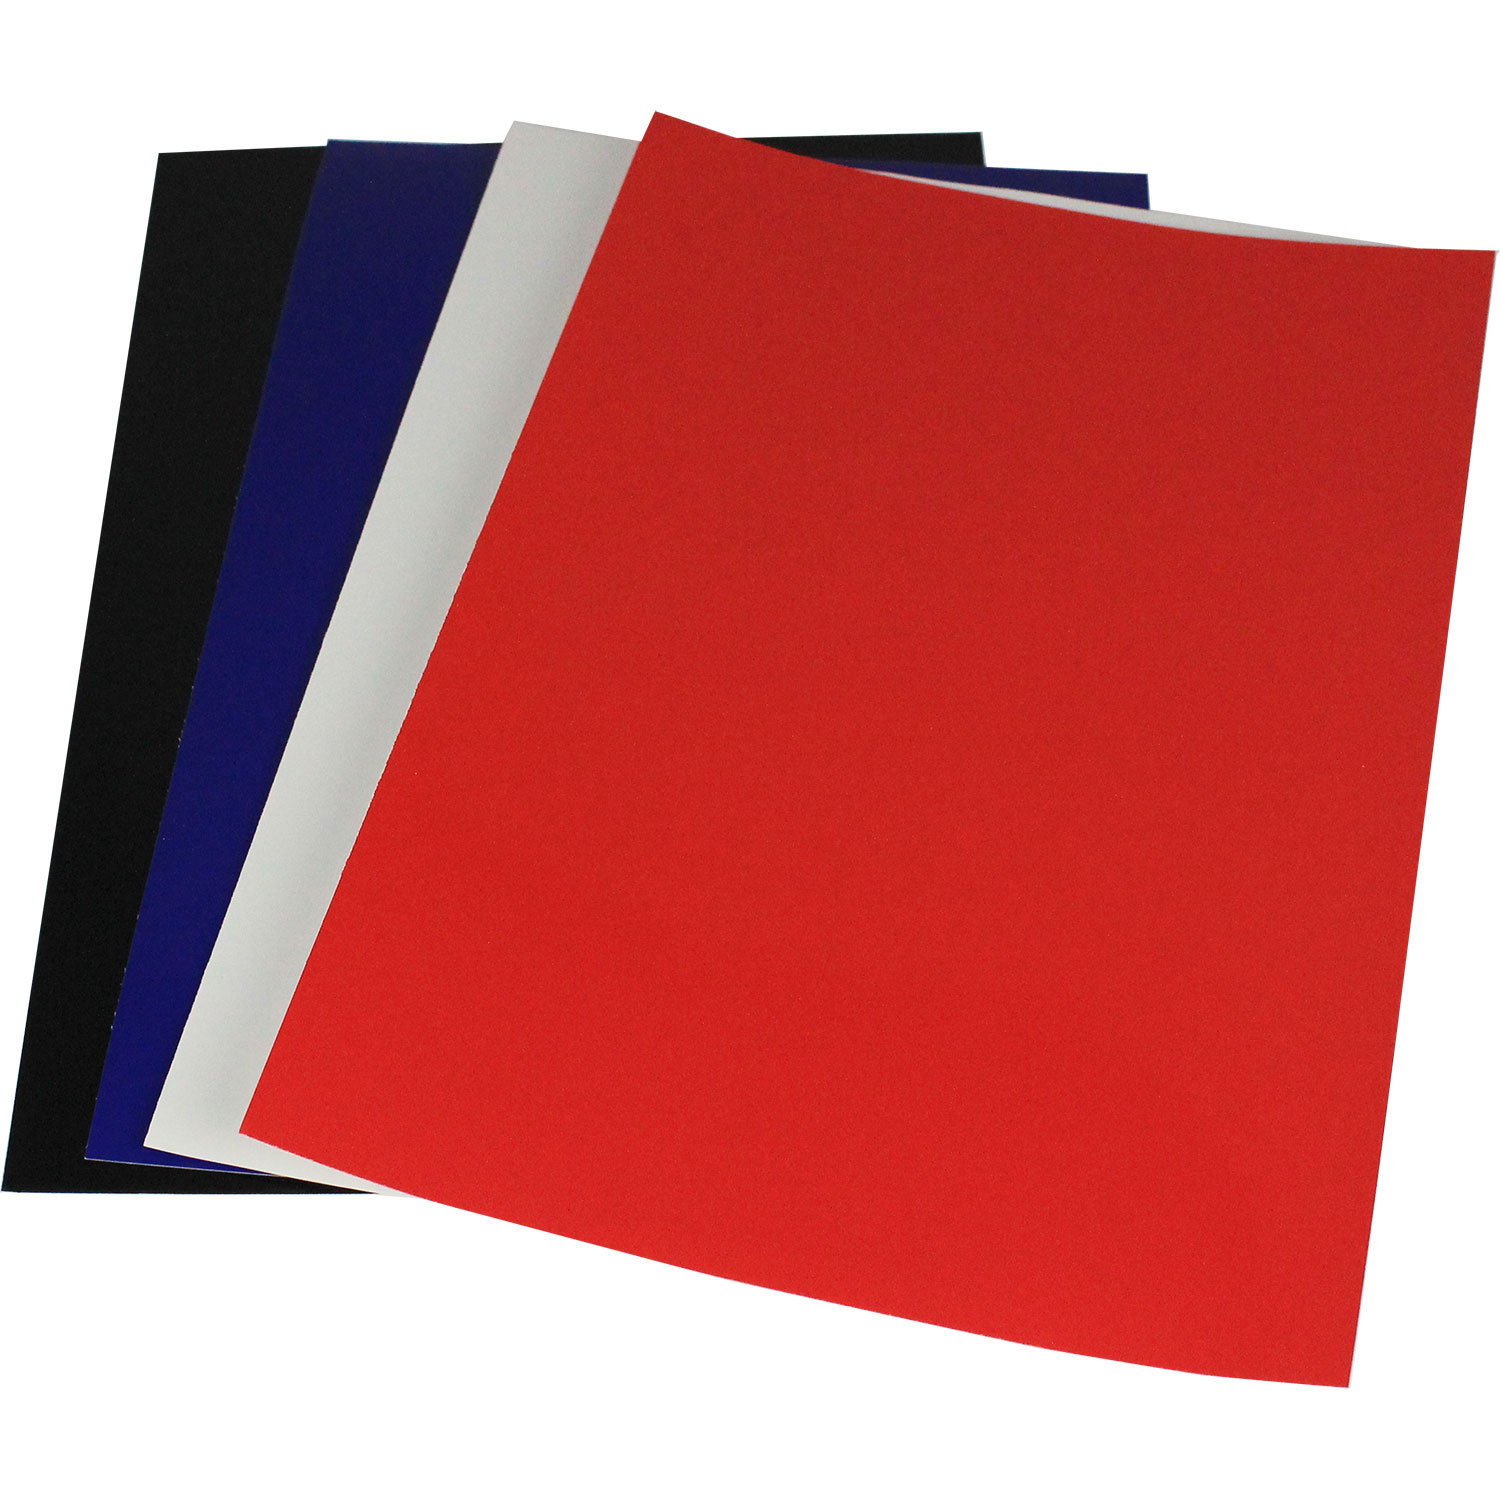 A3 White Gloss Chromolux Binding Covers (100)